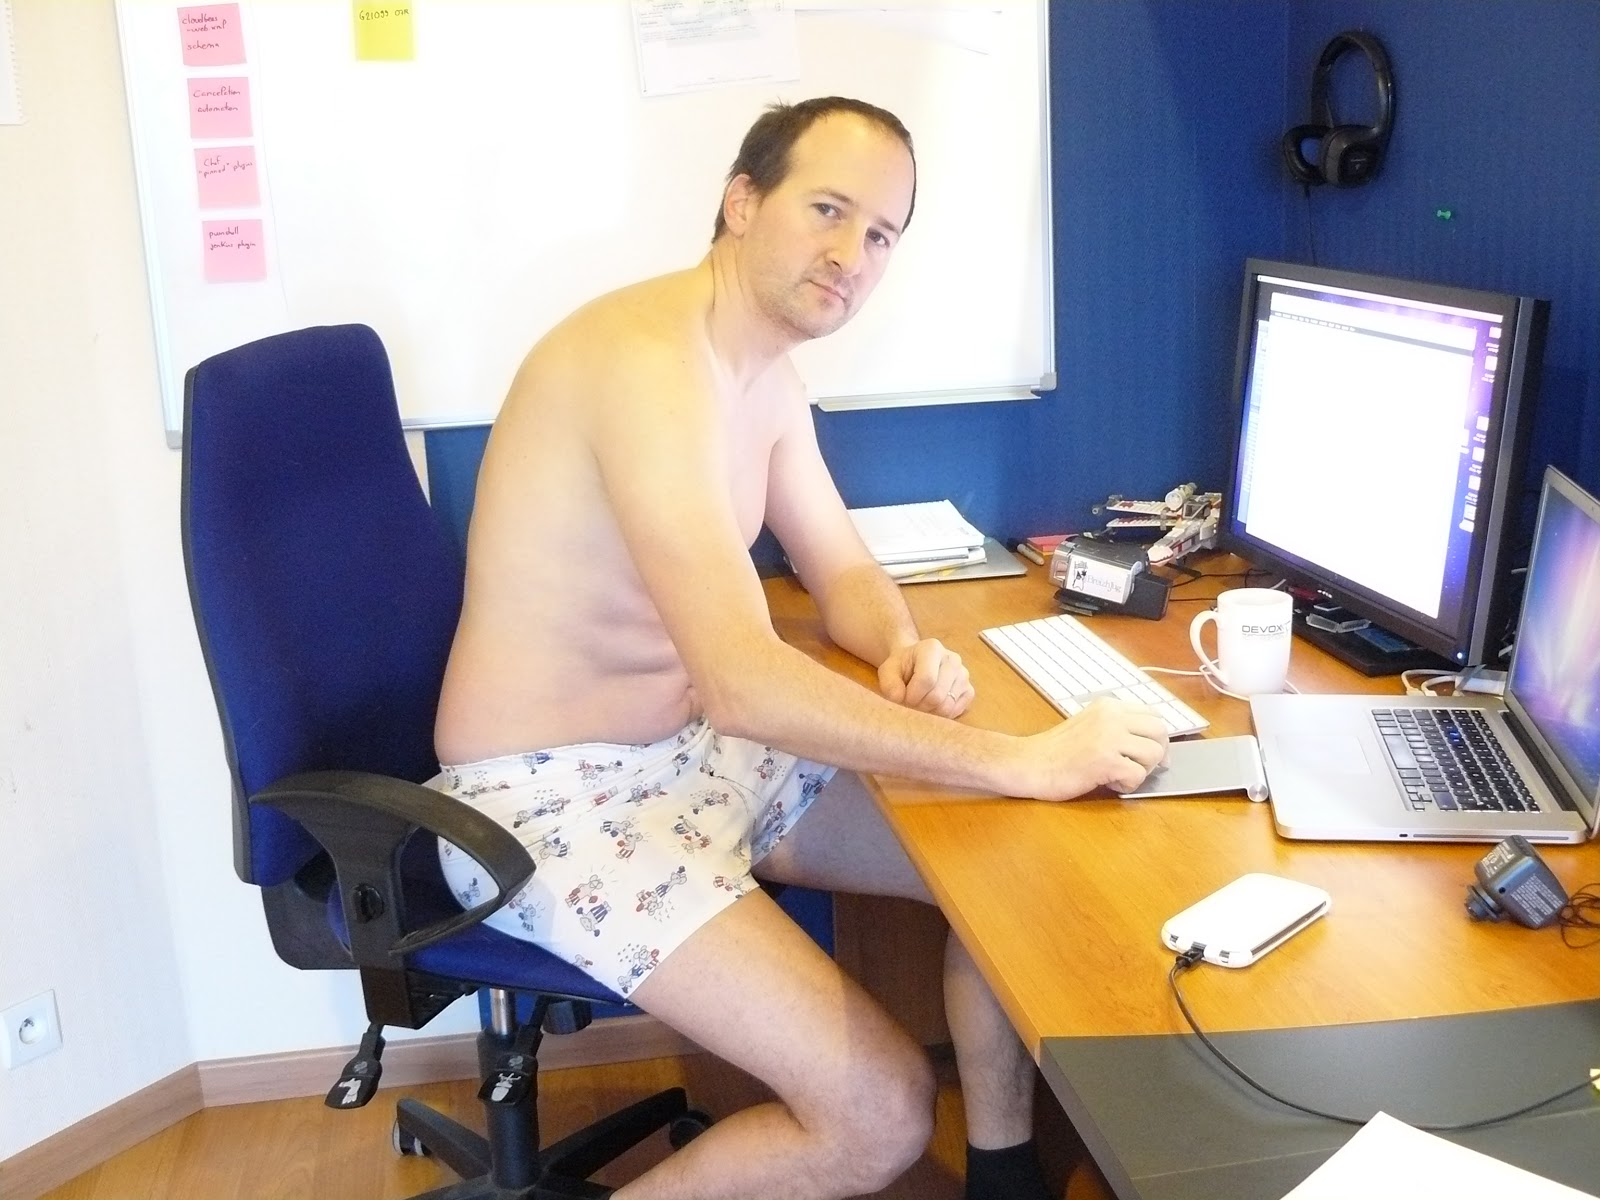 Image result for working no pants on